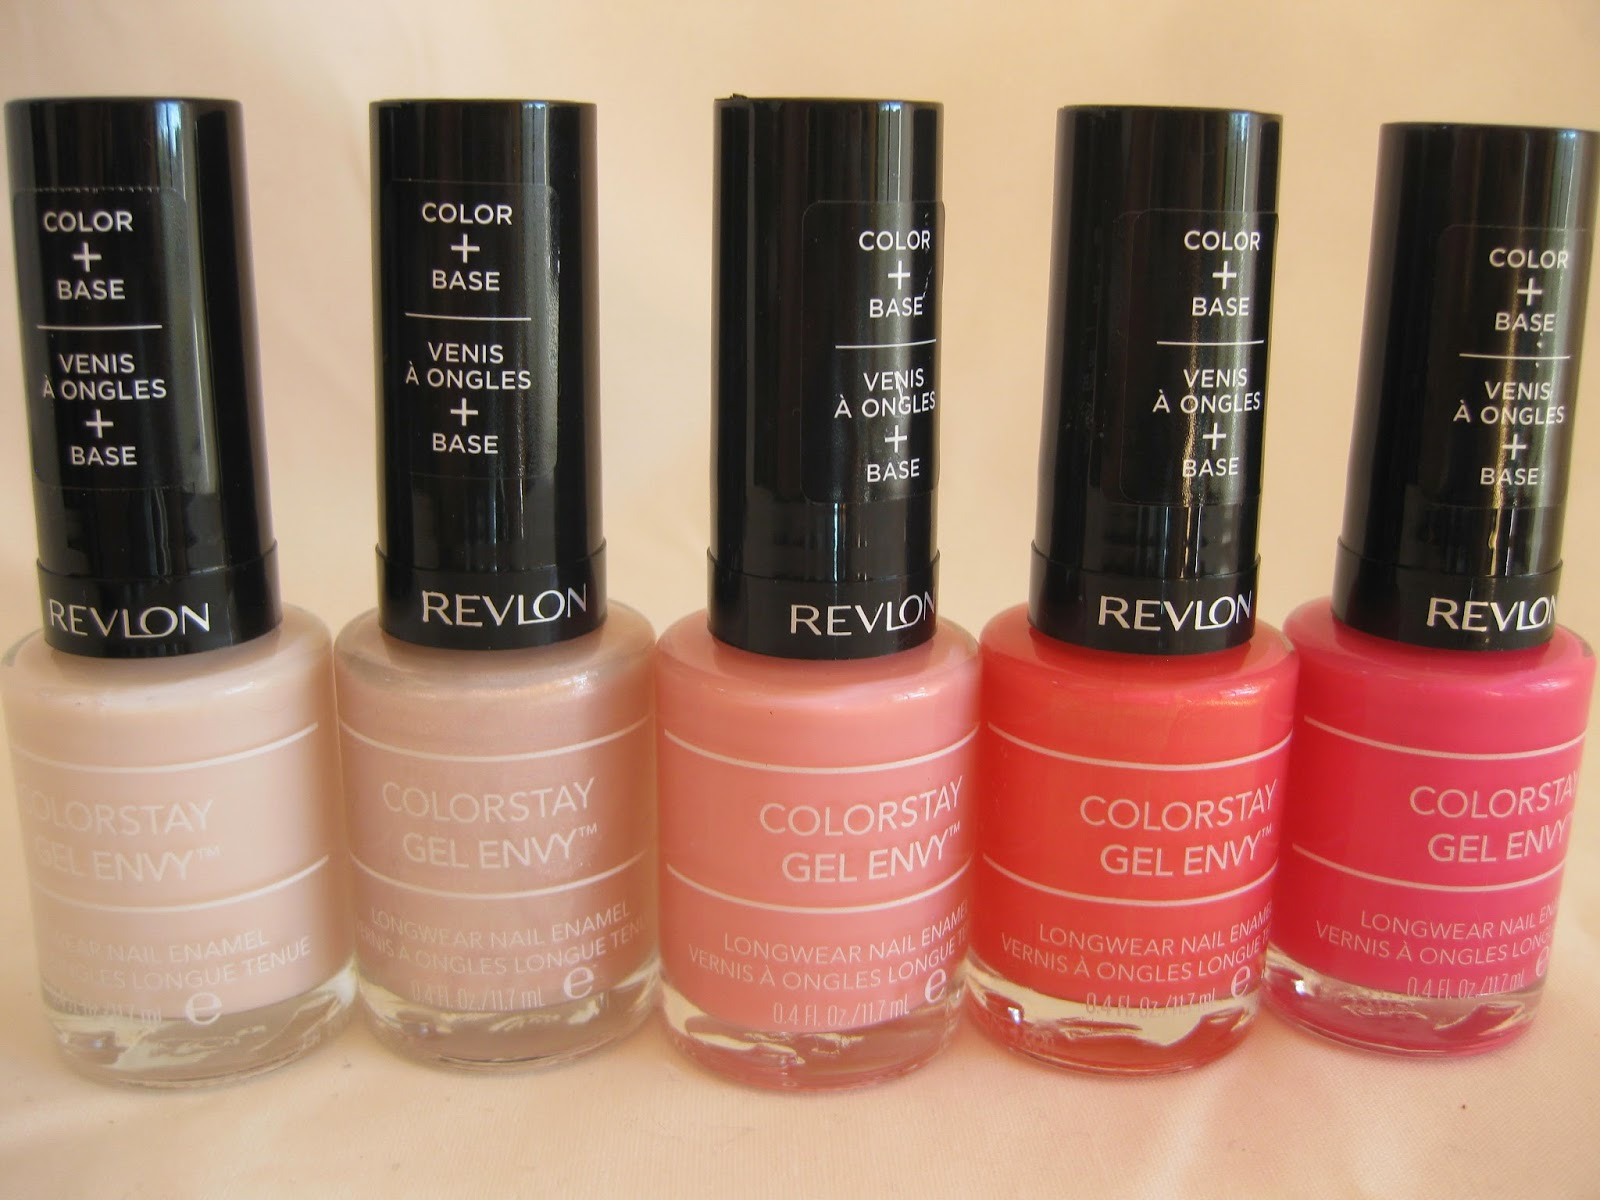 Review revlon gel envy nail polish what are their colours you ask scroll on down and feast your eyes on these little beauties nvjuhfo Image collections